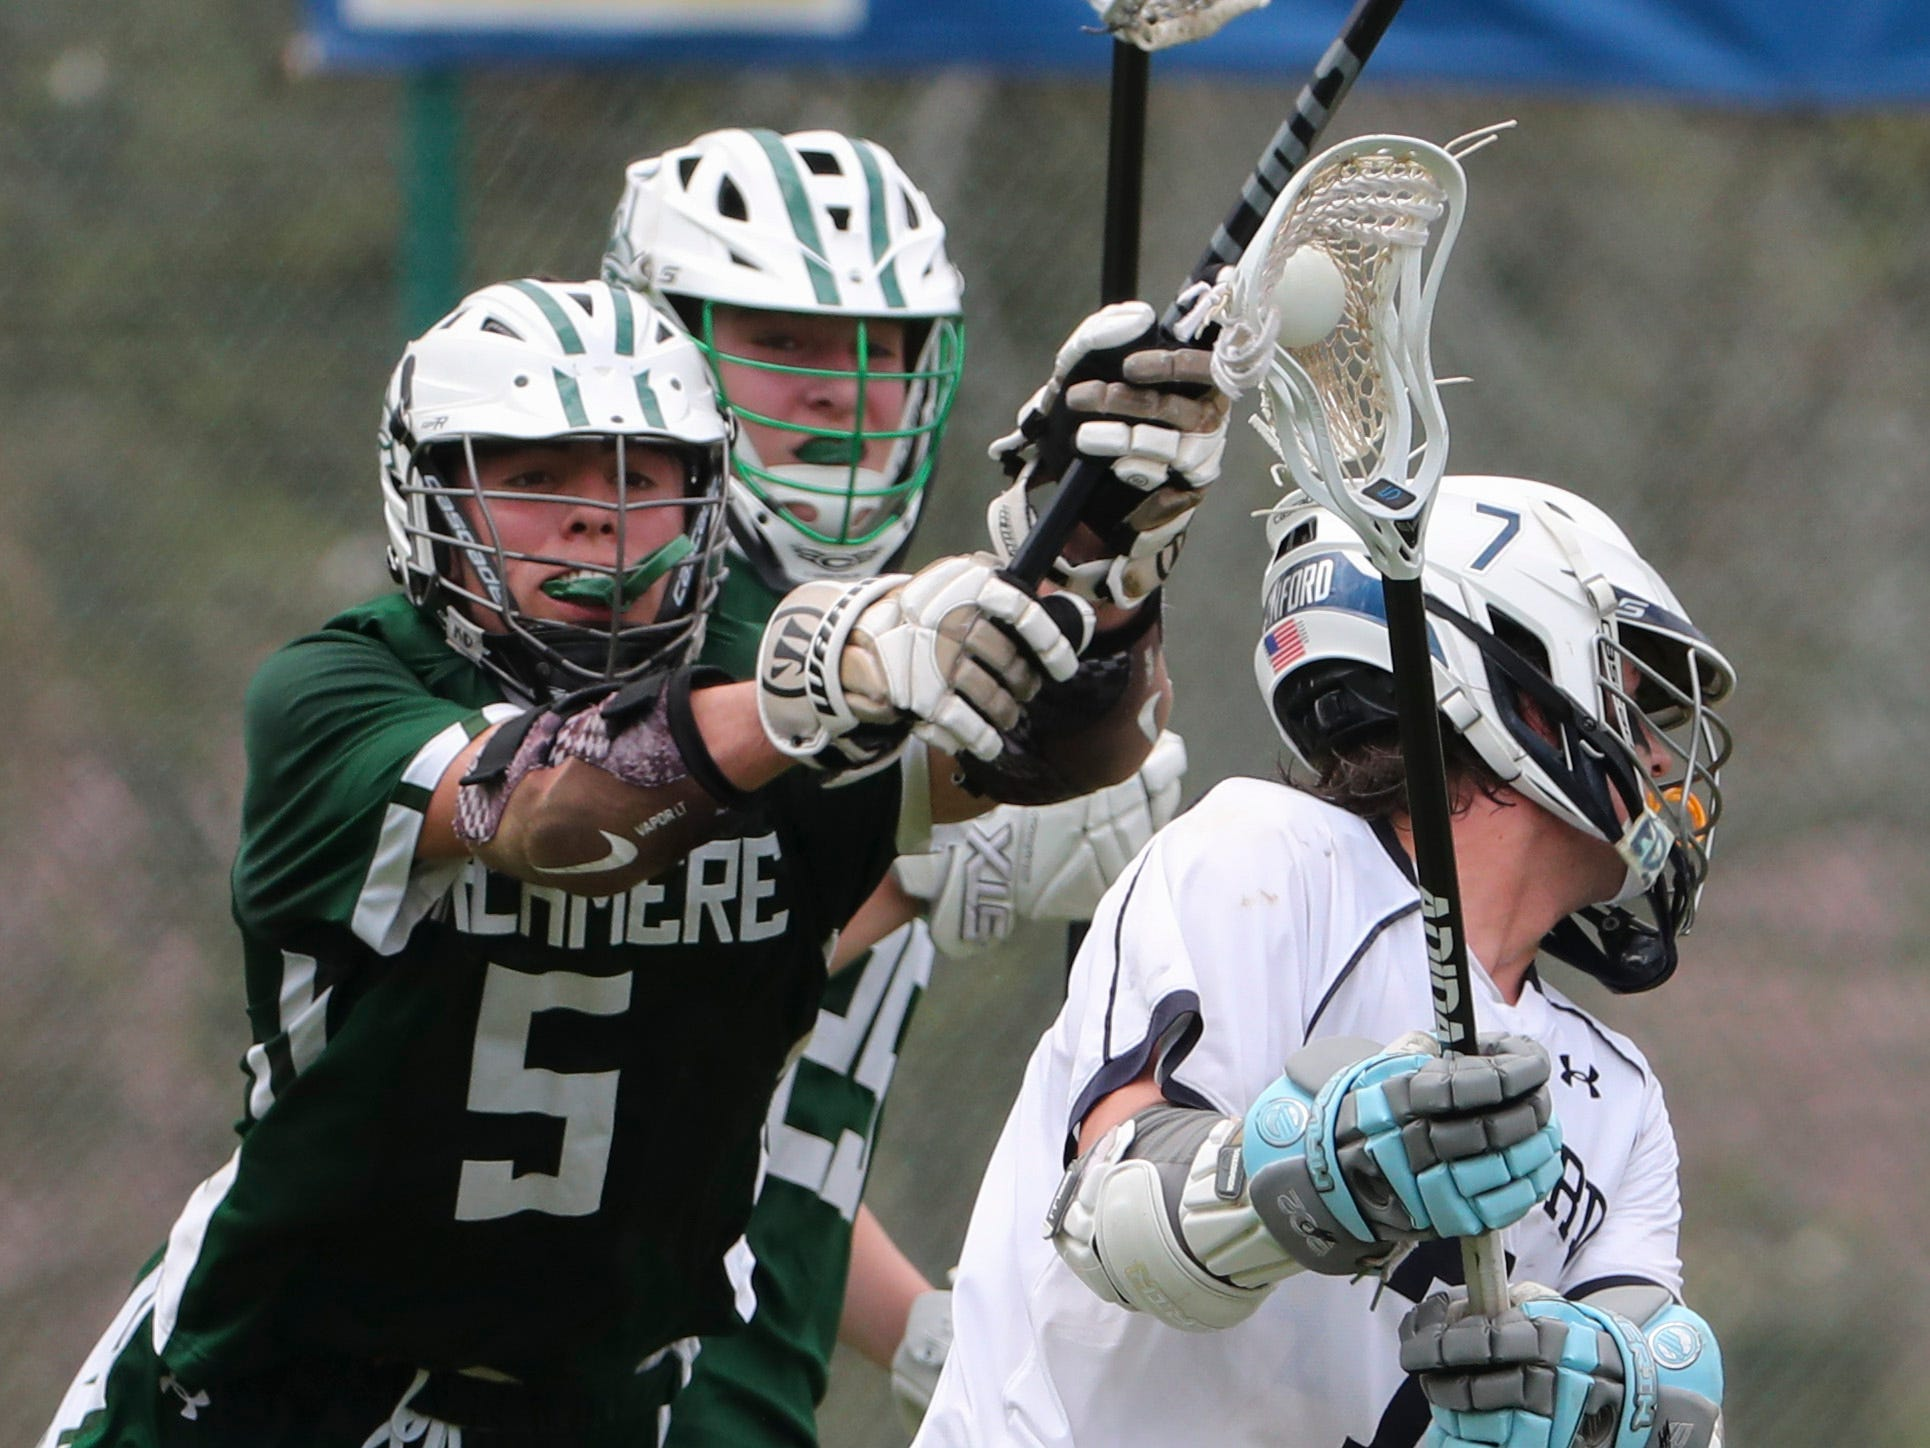 Archmere's Niall Marley reacts to try to stop a shot by Sanford's Tommy Bloom in the second half of Sanford's 12-10 win Saturday.